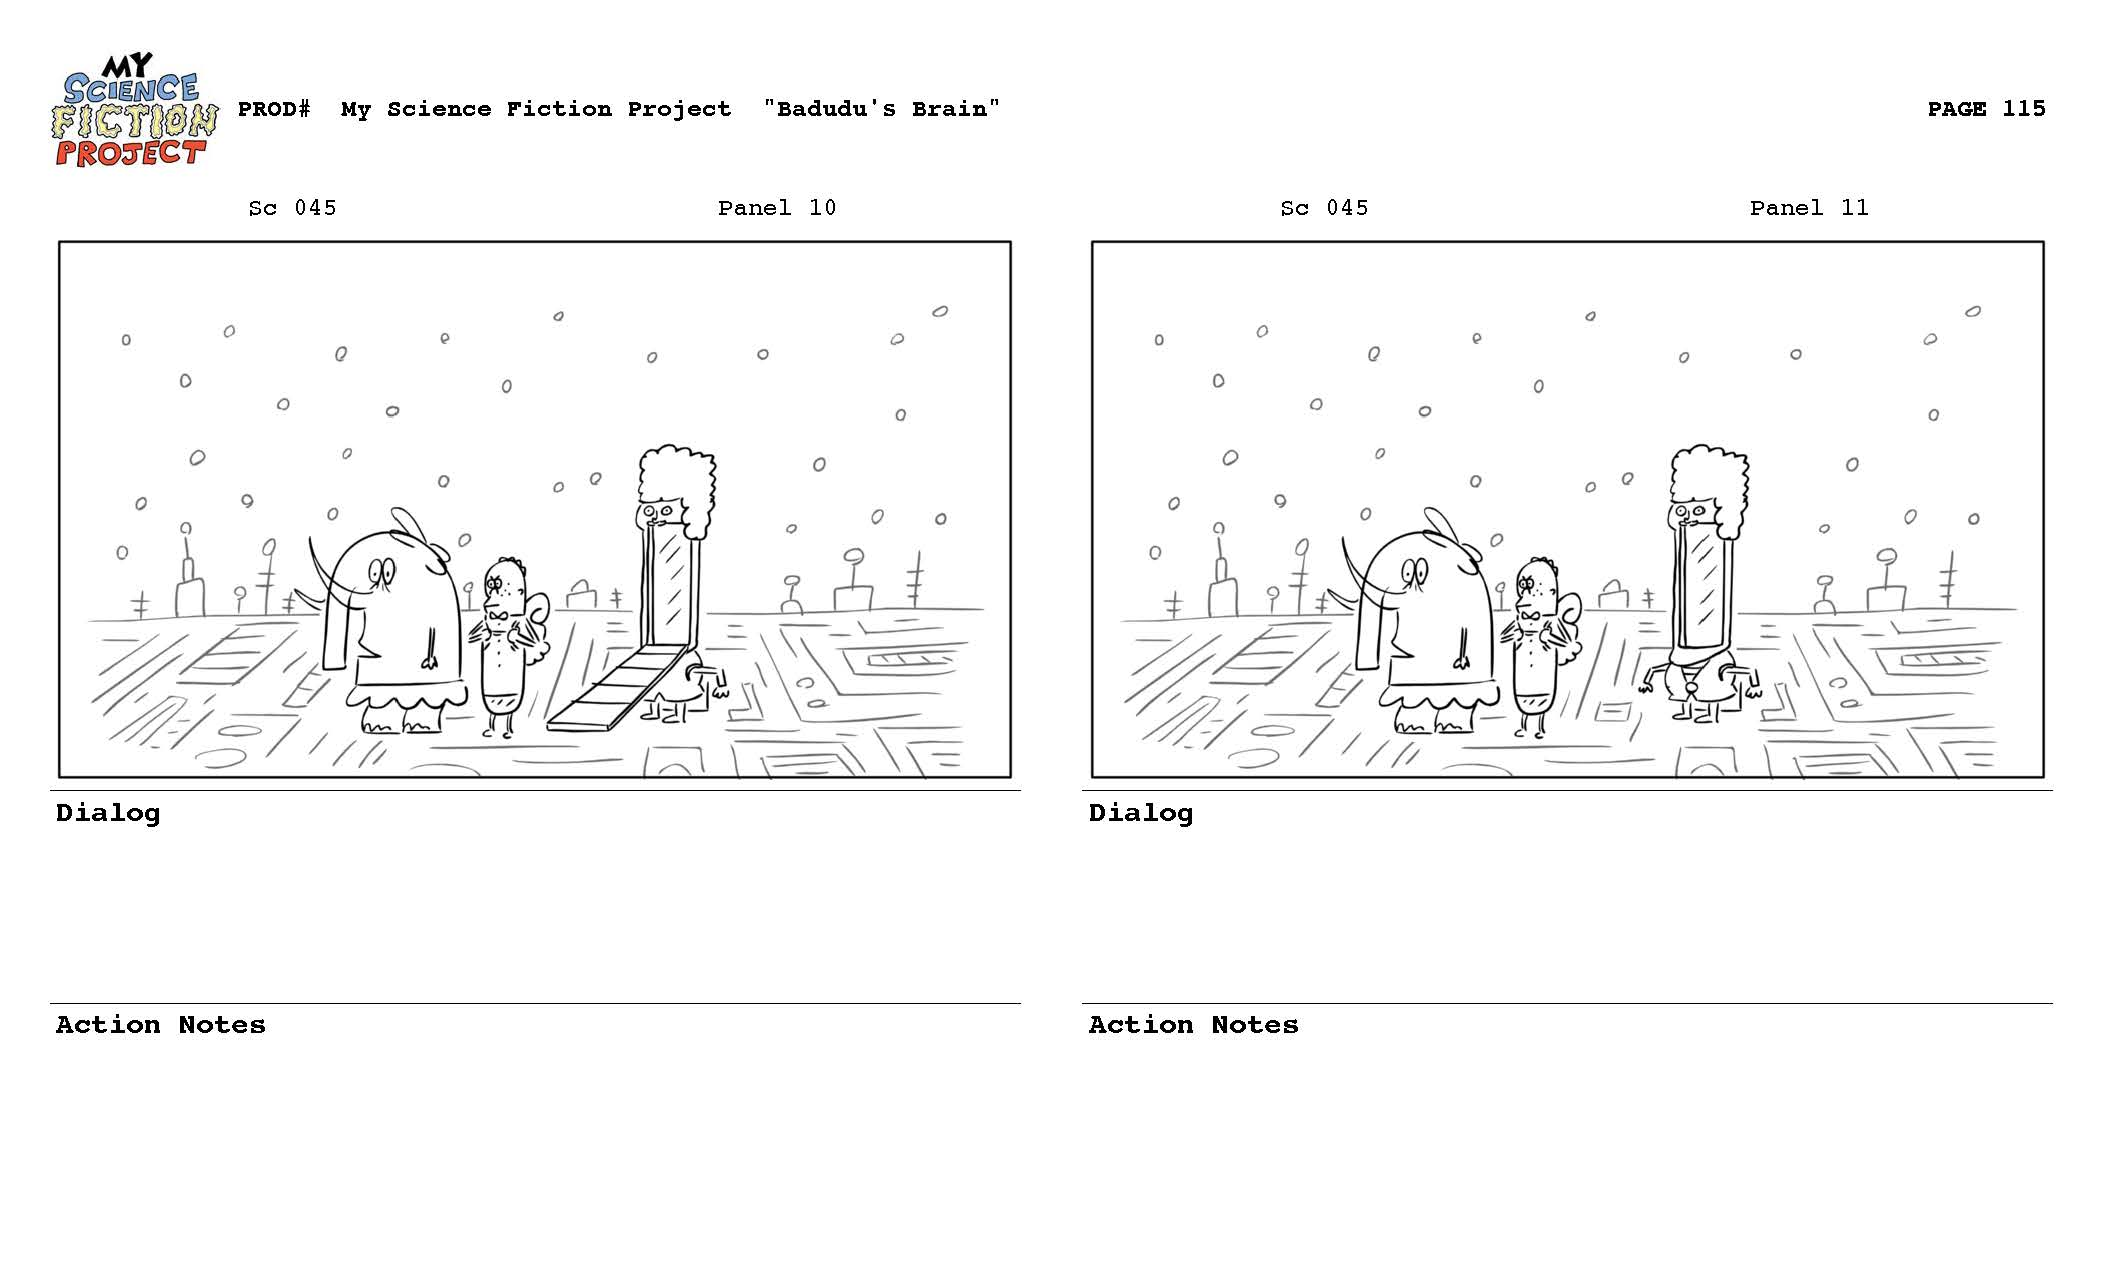 My_Science_Fiction_Project_SB_083112_reduced_Page_115.jpg